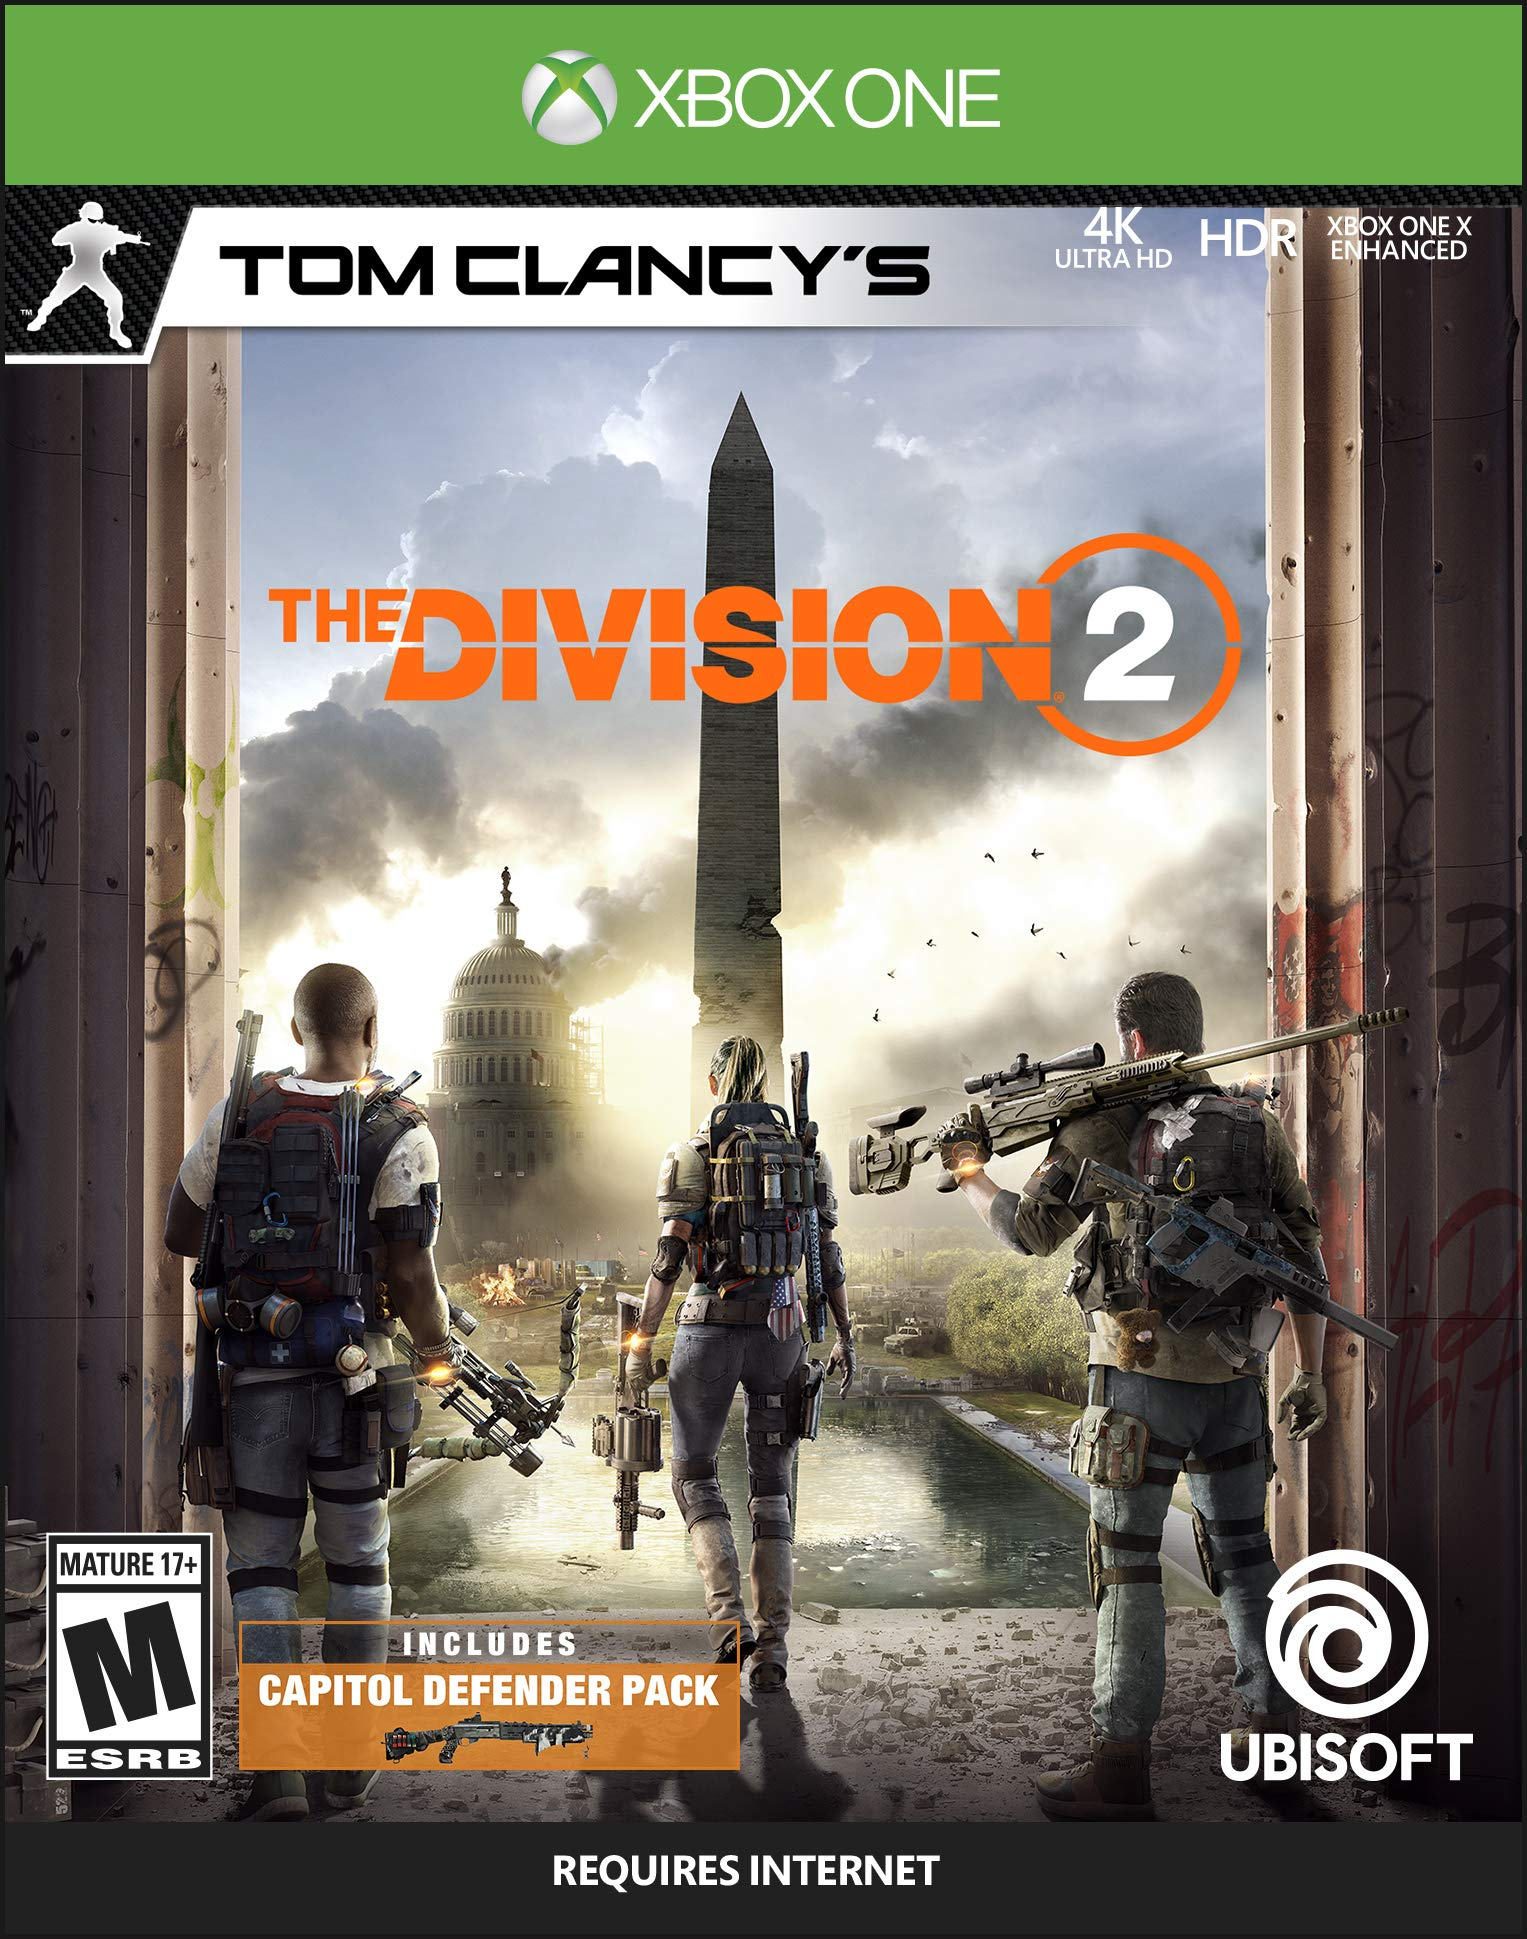 Tom Clancy's The Division 2 - Xbox One [Digital Code]